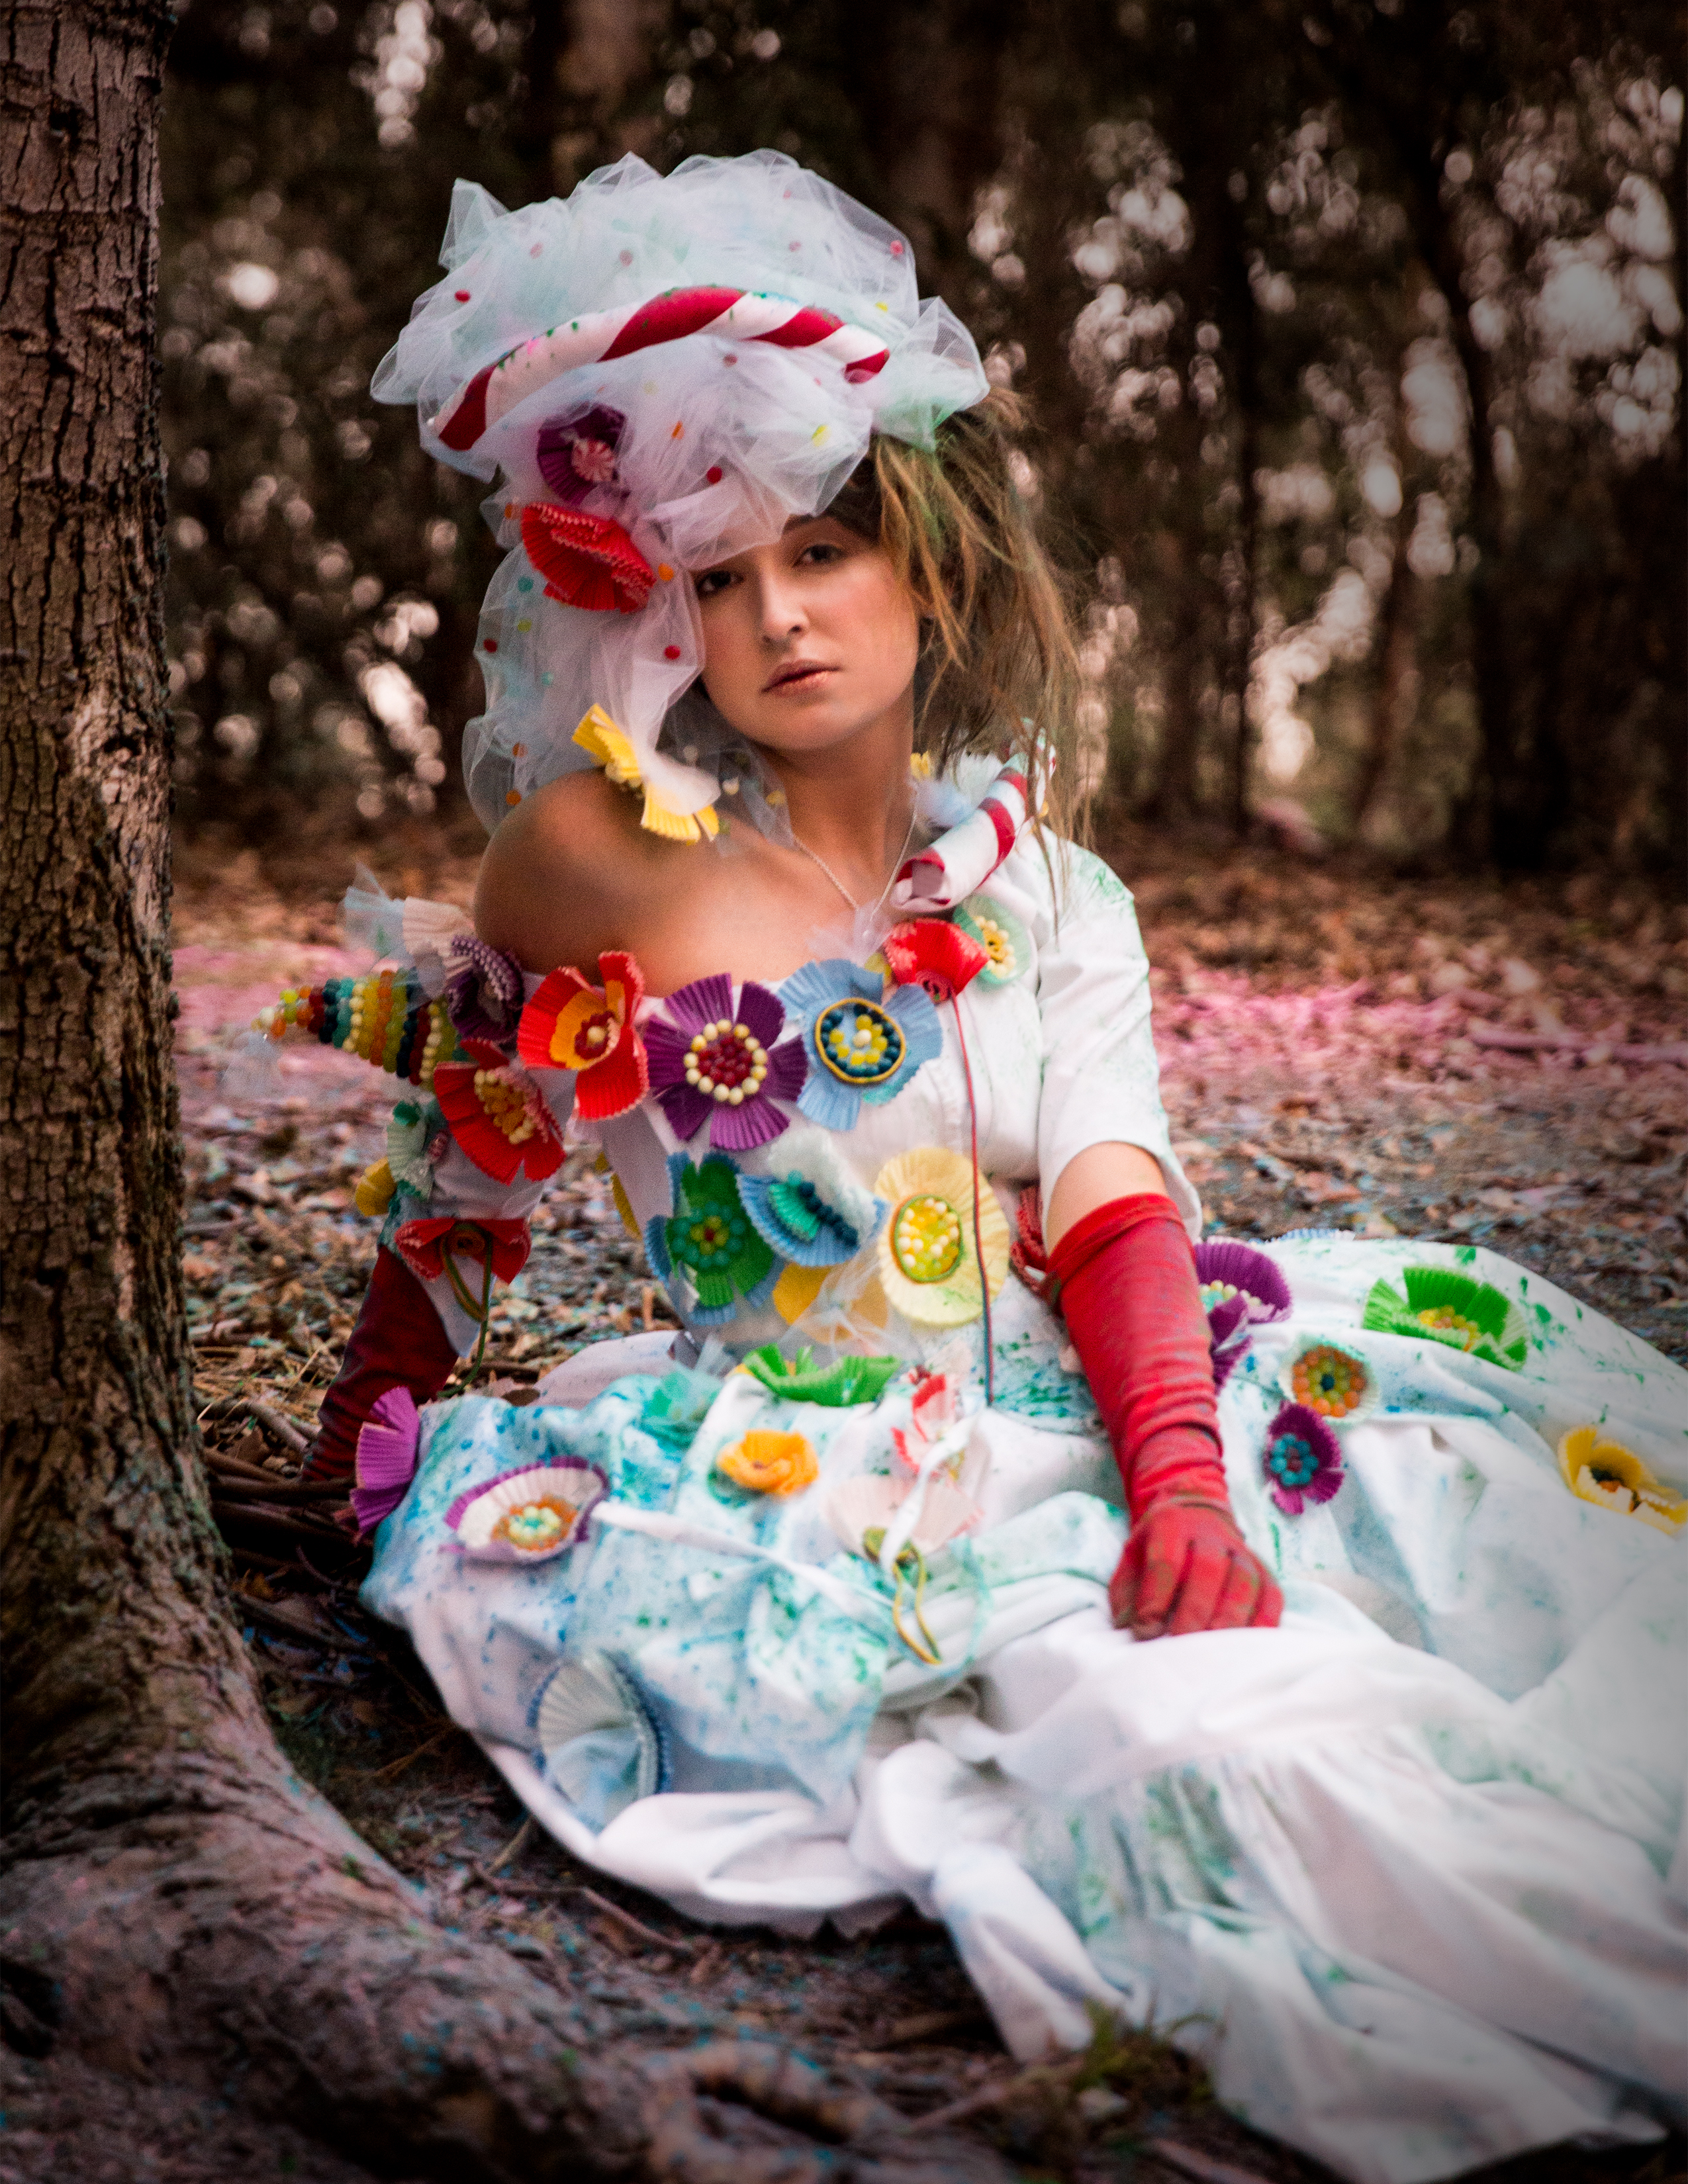 The costume is inspired by Marie Antoinette - 18th century fashion in France. The costume decorations are made from jelly beans, Twizzlers, and muffin cups.  Photography by Pavlina Popovska    Make up by: Toni Scott                    Vanessa Vasquez  Hair: Toni Scott  Designer: Pavlina Popovska   Model: Kiara Beltran